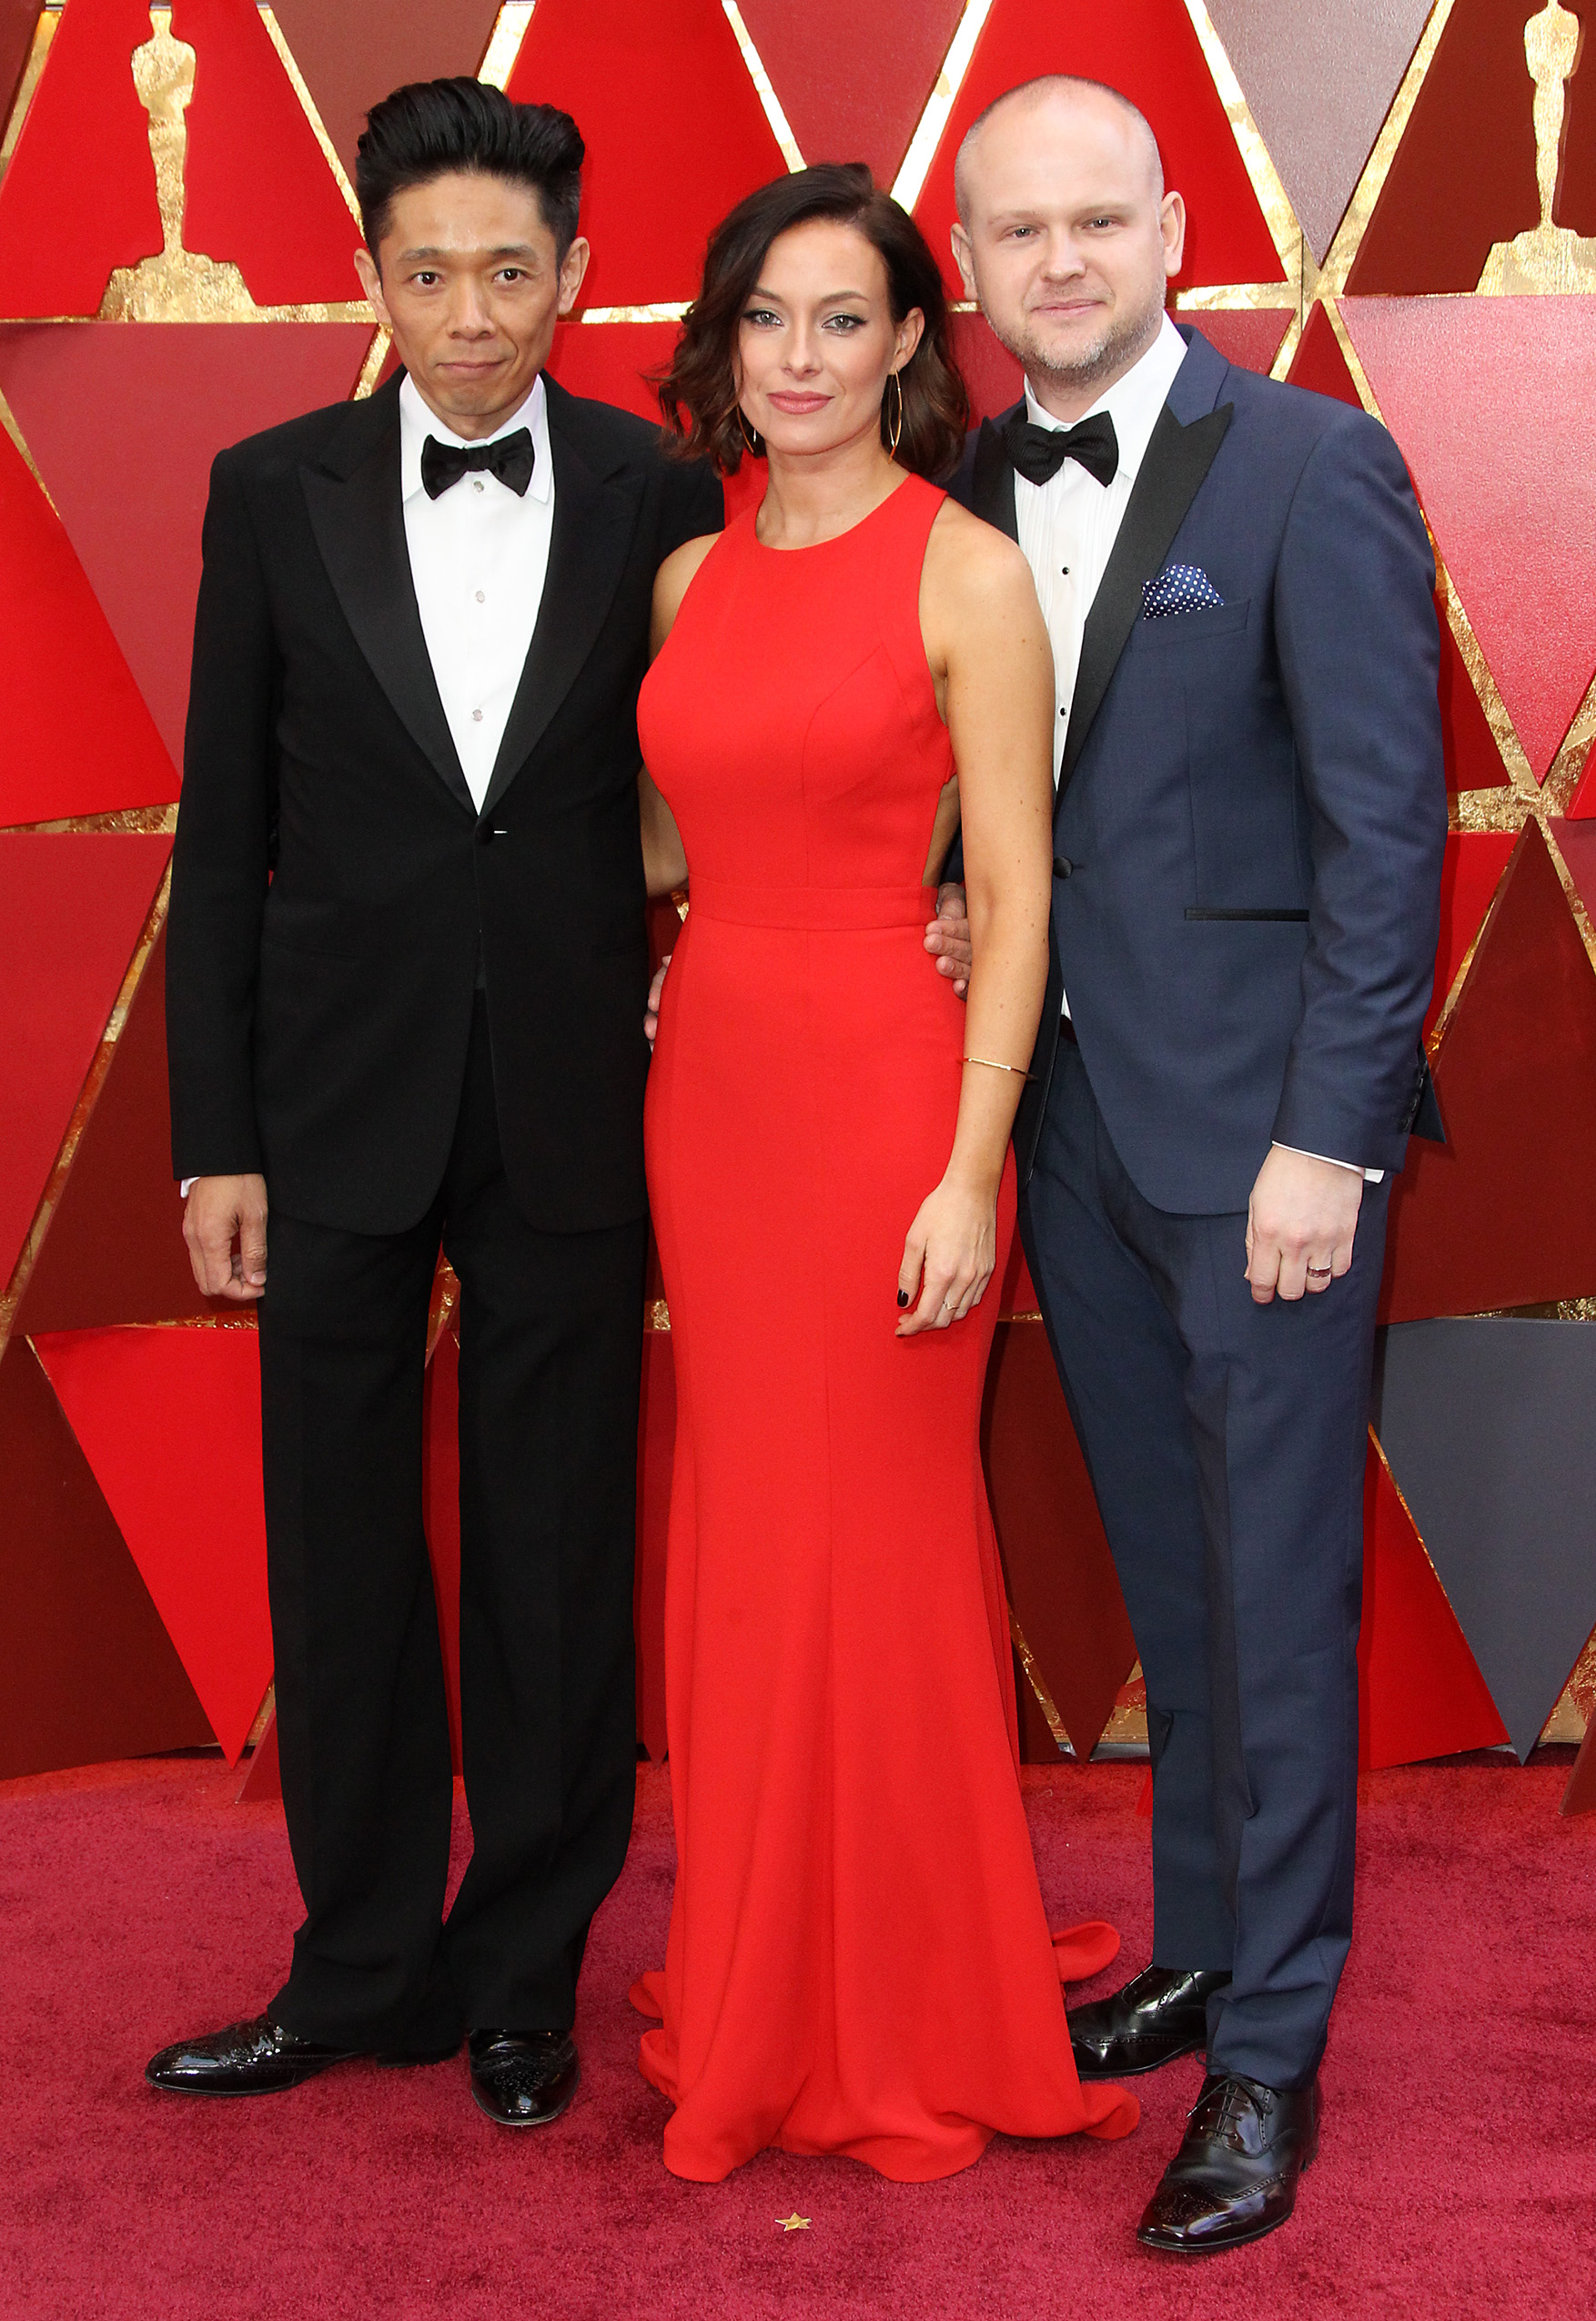 Kazuhiro Tsuji, Lucy Sibbick and David Malinowski{&amp;nbsp;}arrive at the 90th Annual Academy Awards (Oscars) held at the Dolby Theater in Hollywood, California. (Image: Adriana M. Barraza/WENN.com)<p></p>